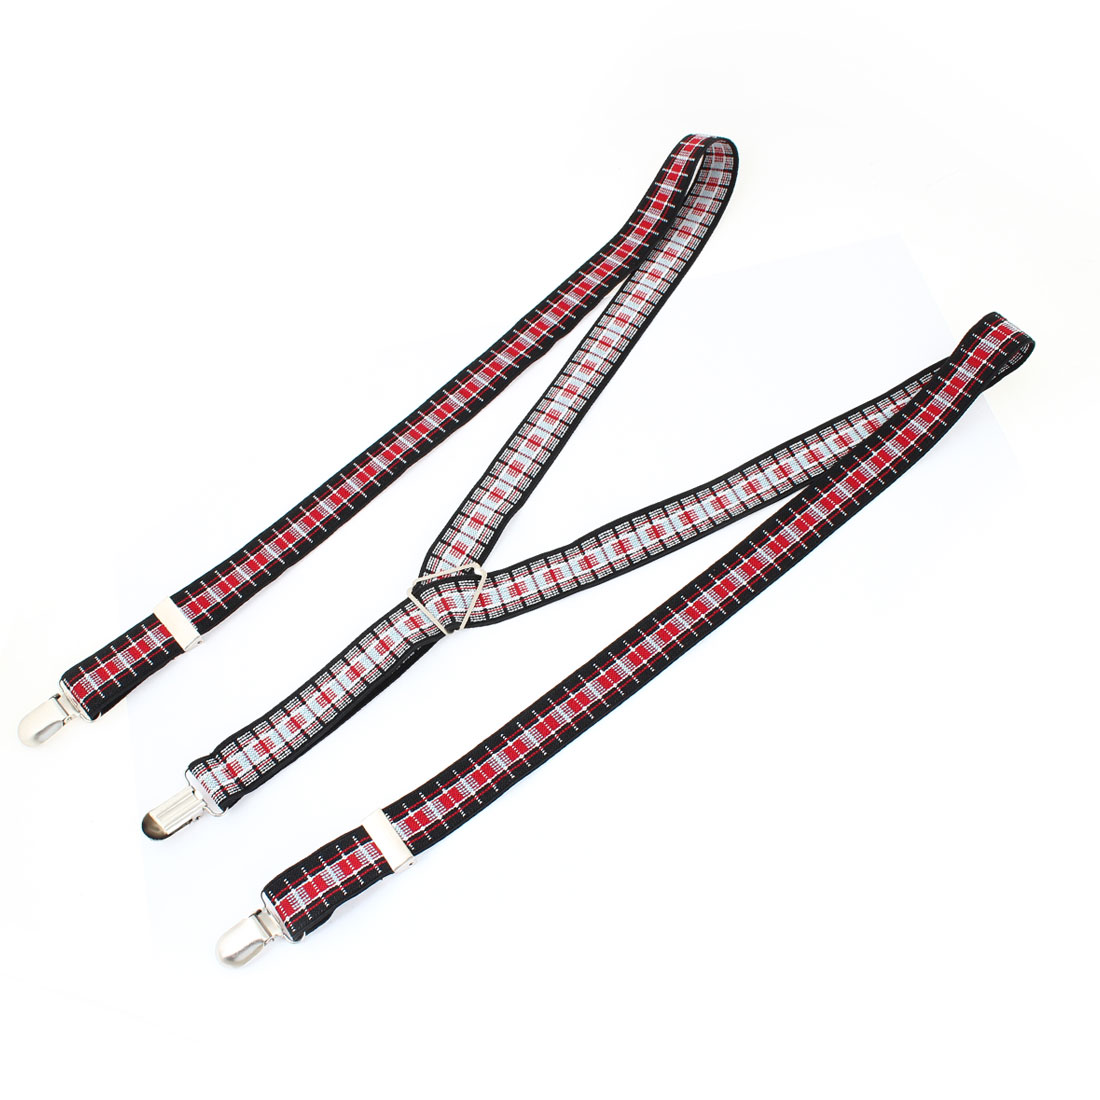 Multicolor Adjustable Suspender Braces 2.5cm Width Strap for Ladies